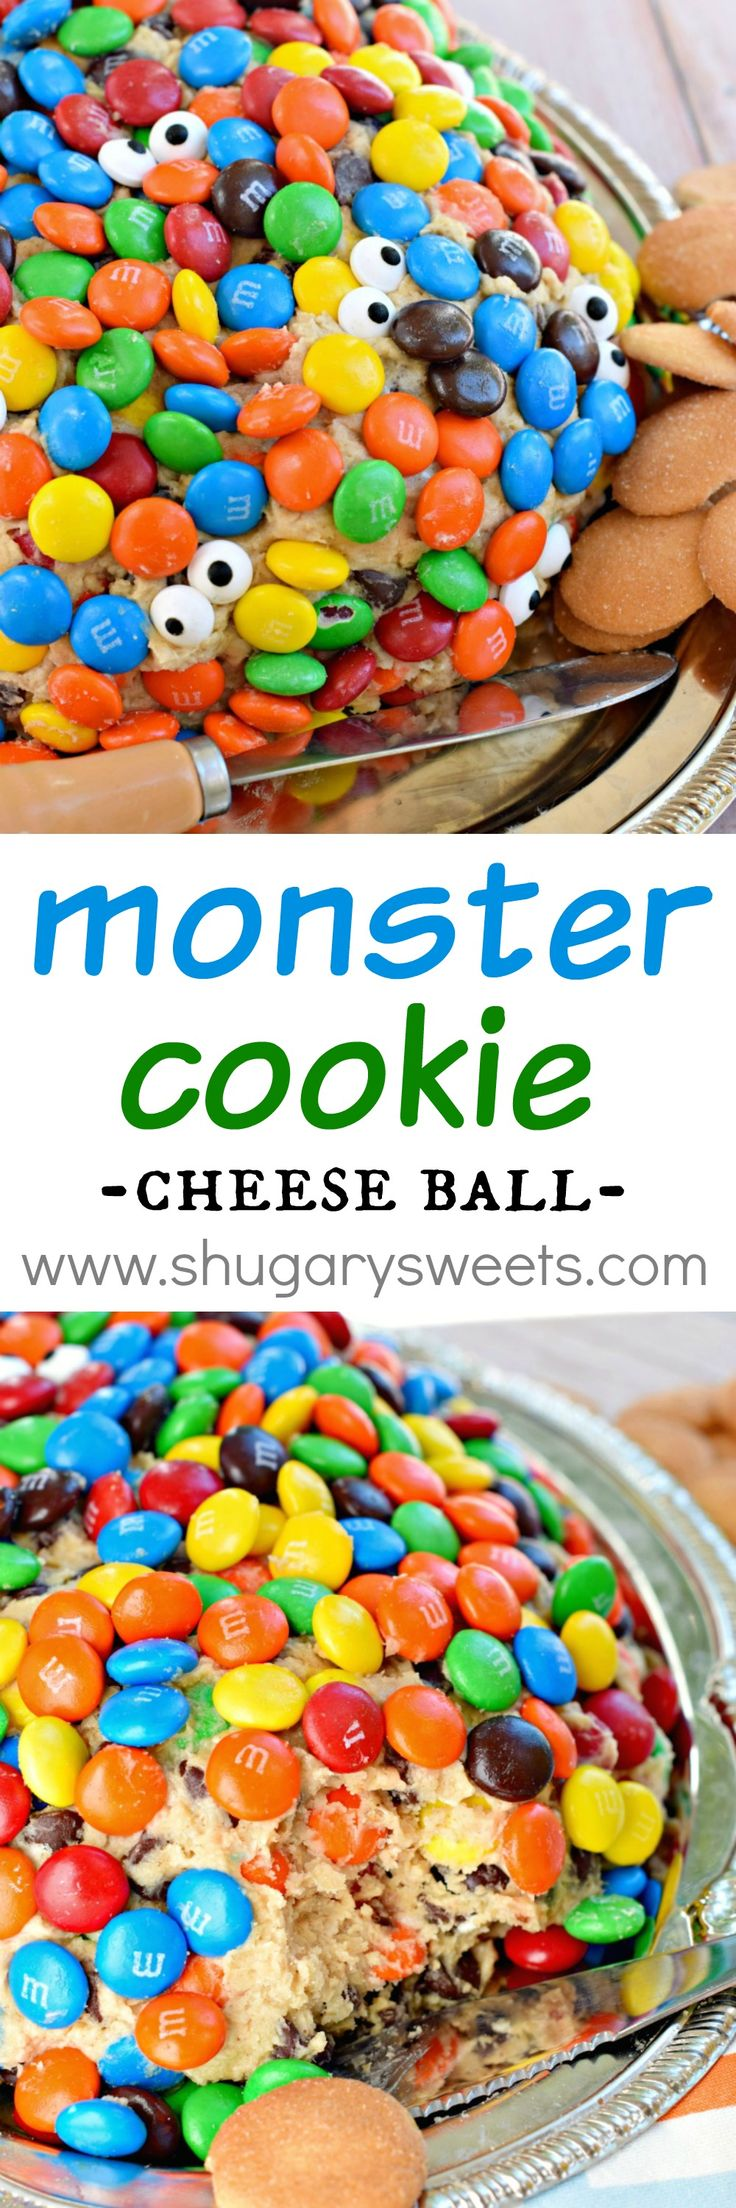 This Monster Cookie Cheese Ball with M&M'S is a crowd pleaser for any Halloween party! Check out this recipe from @shugarysweets.